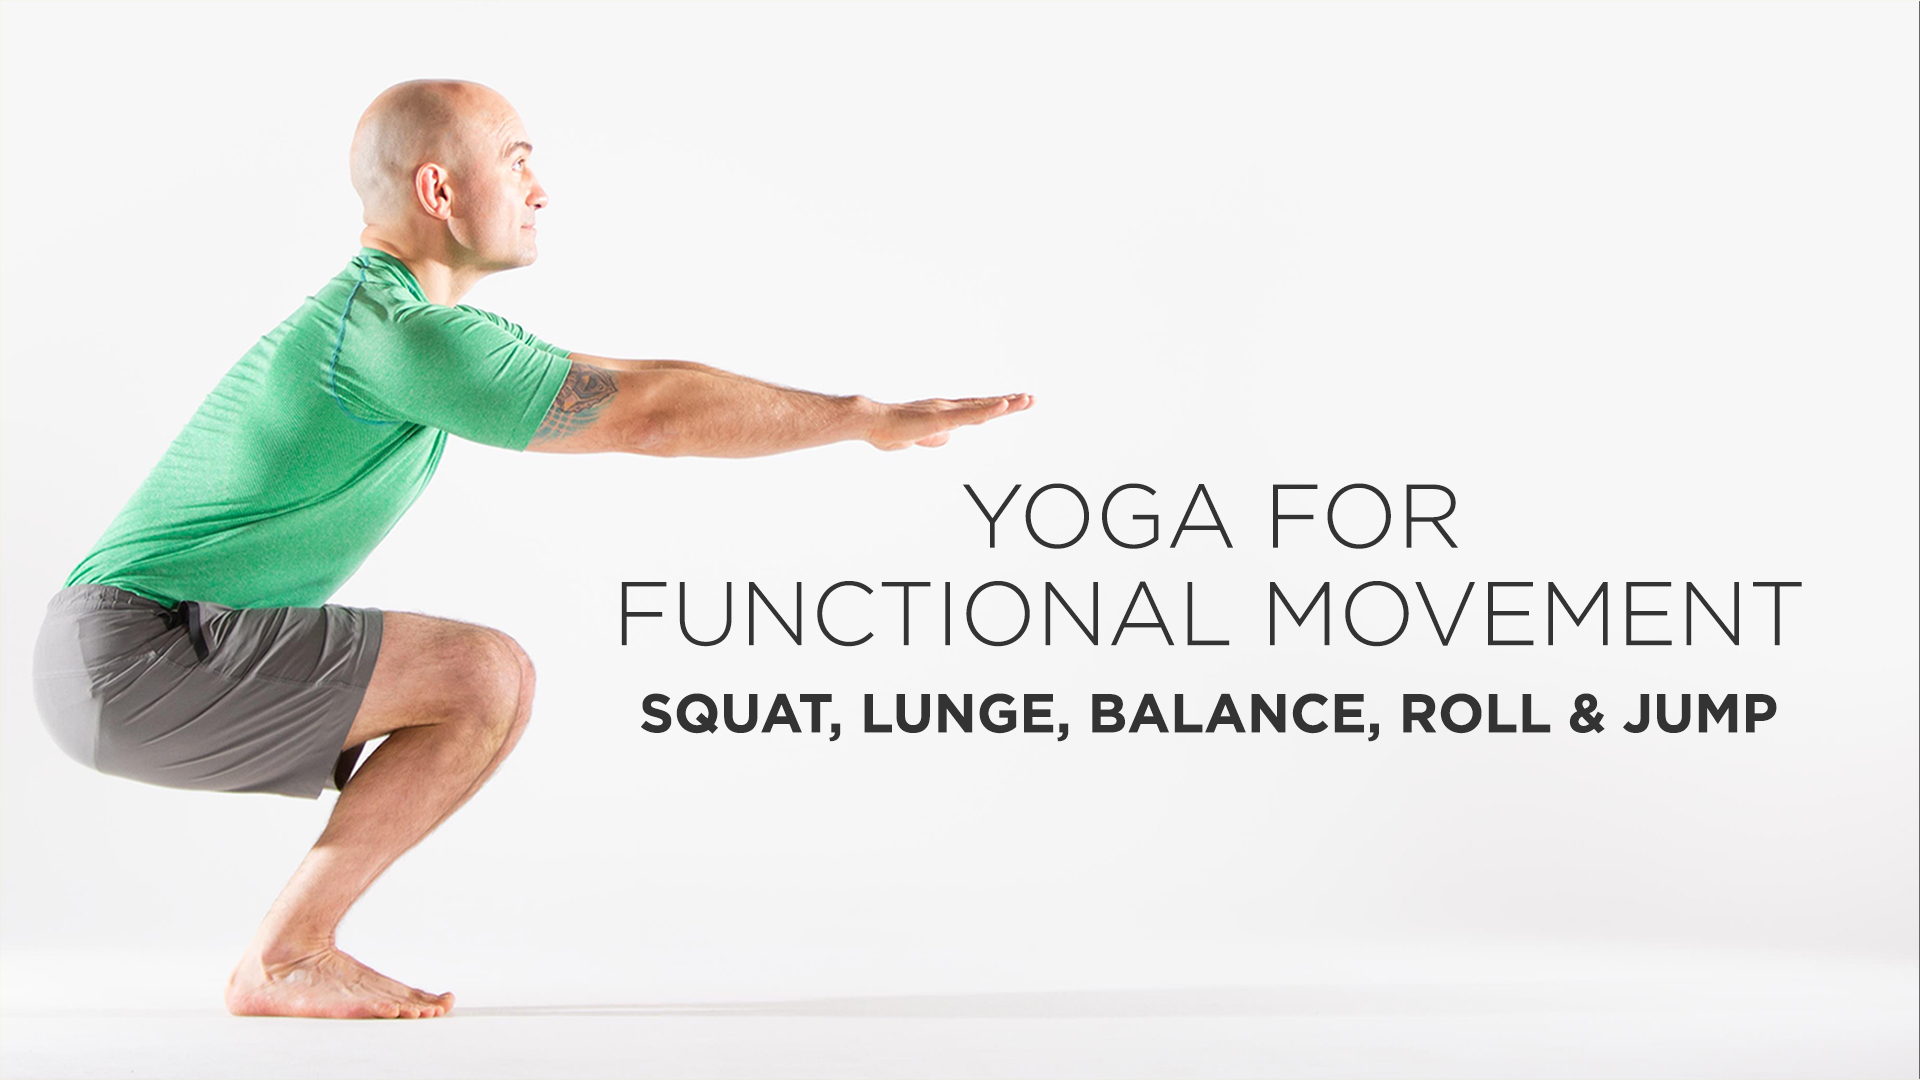 Yoga for Functional Movement: Squat, Lunge, Balance, Roll & Jump